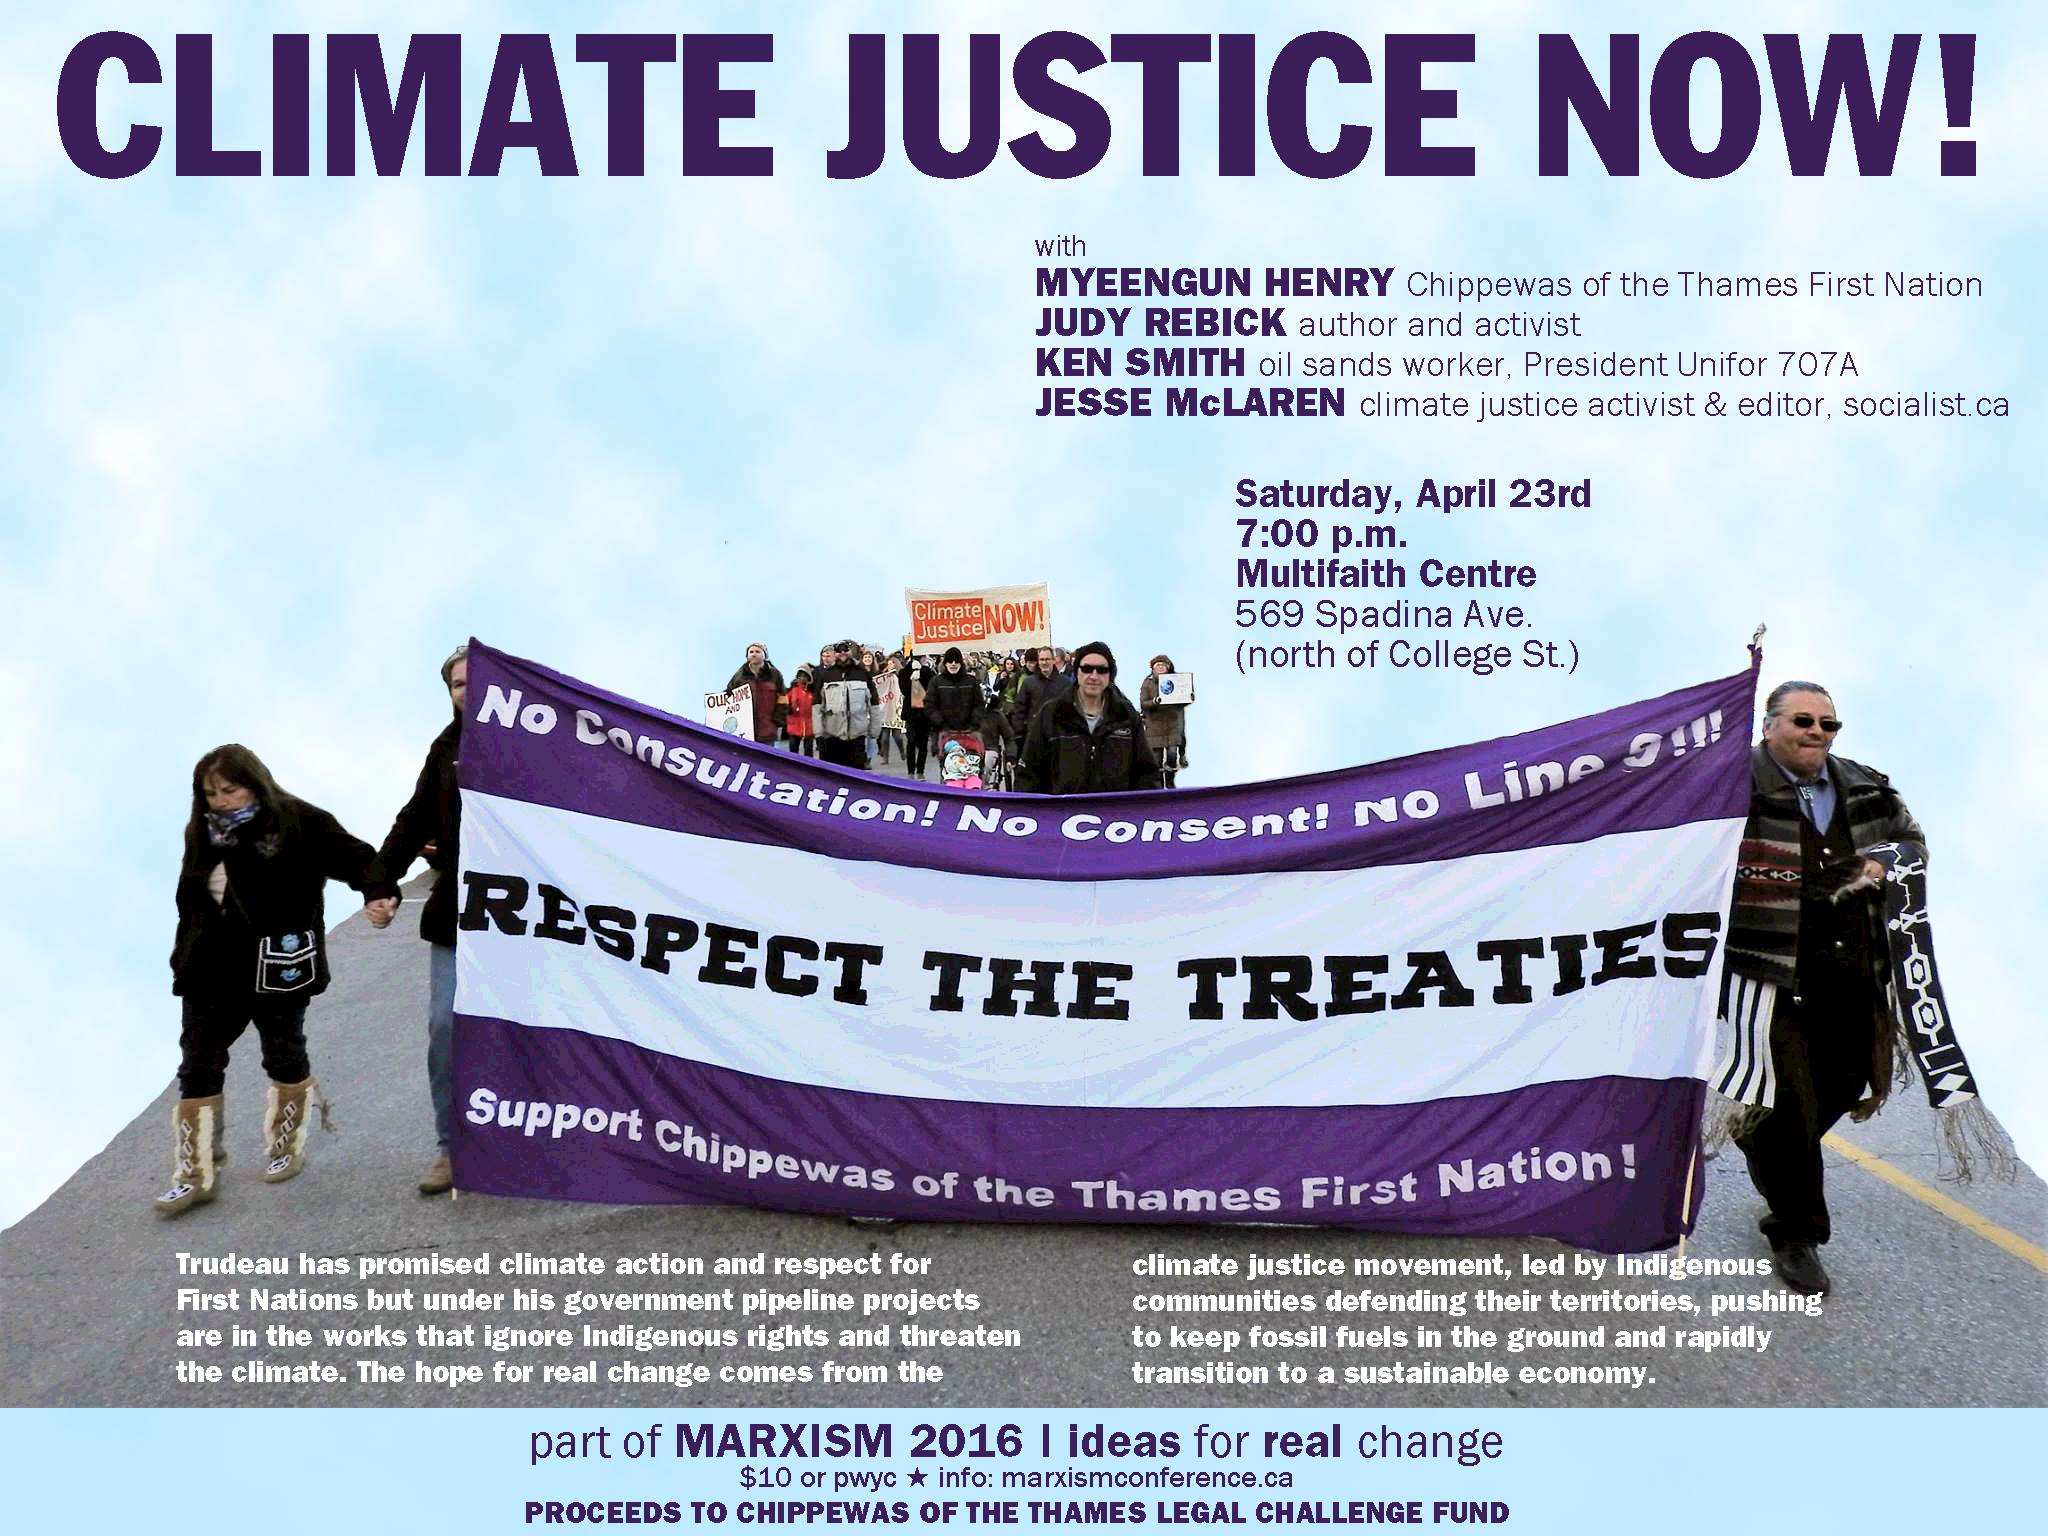 Climate Justice Now Socialist Ca